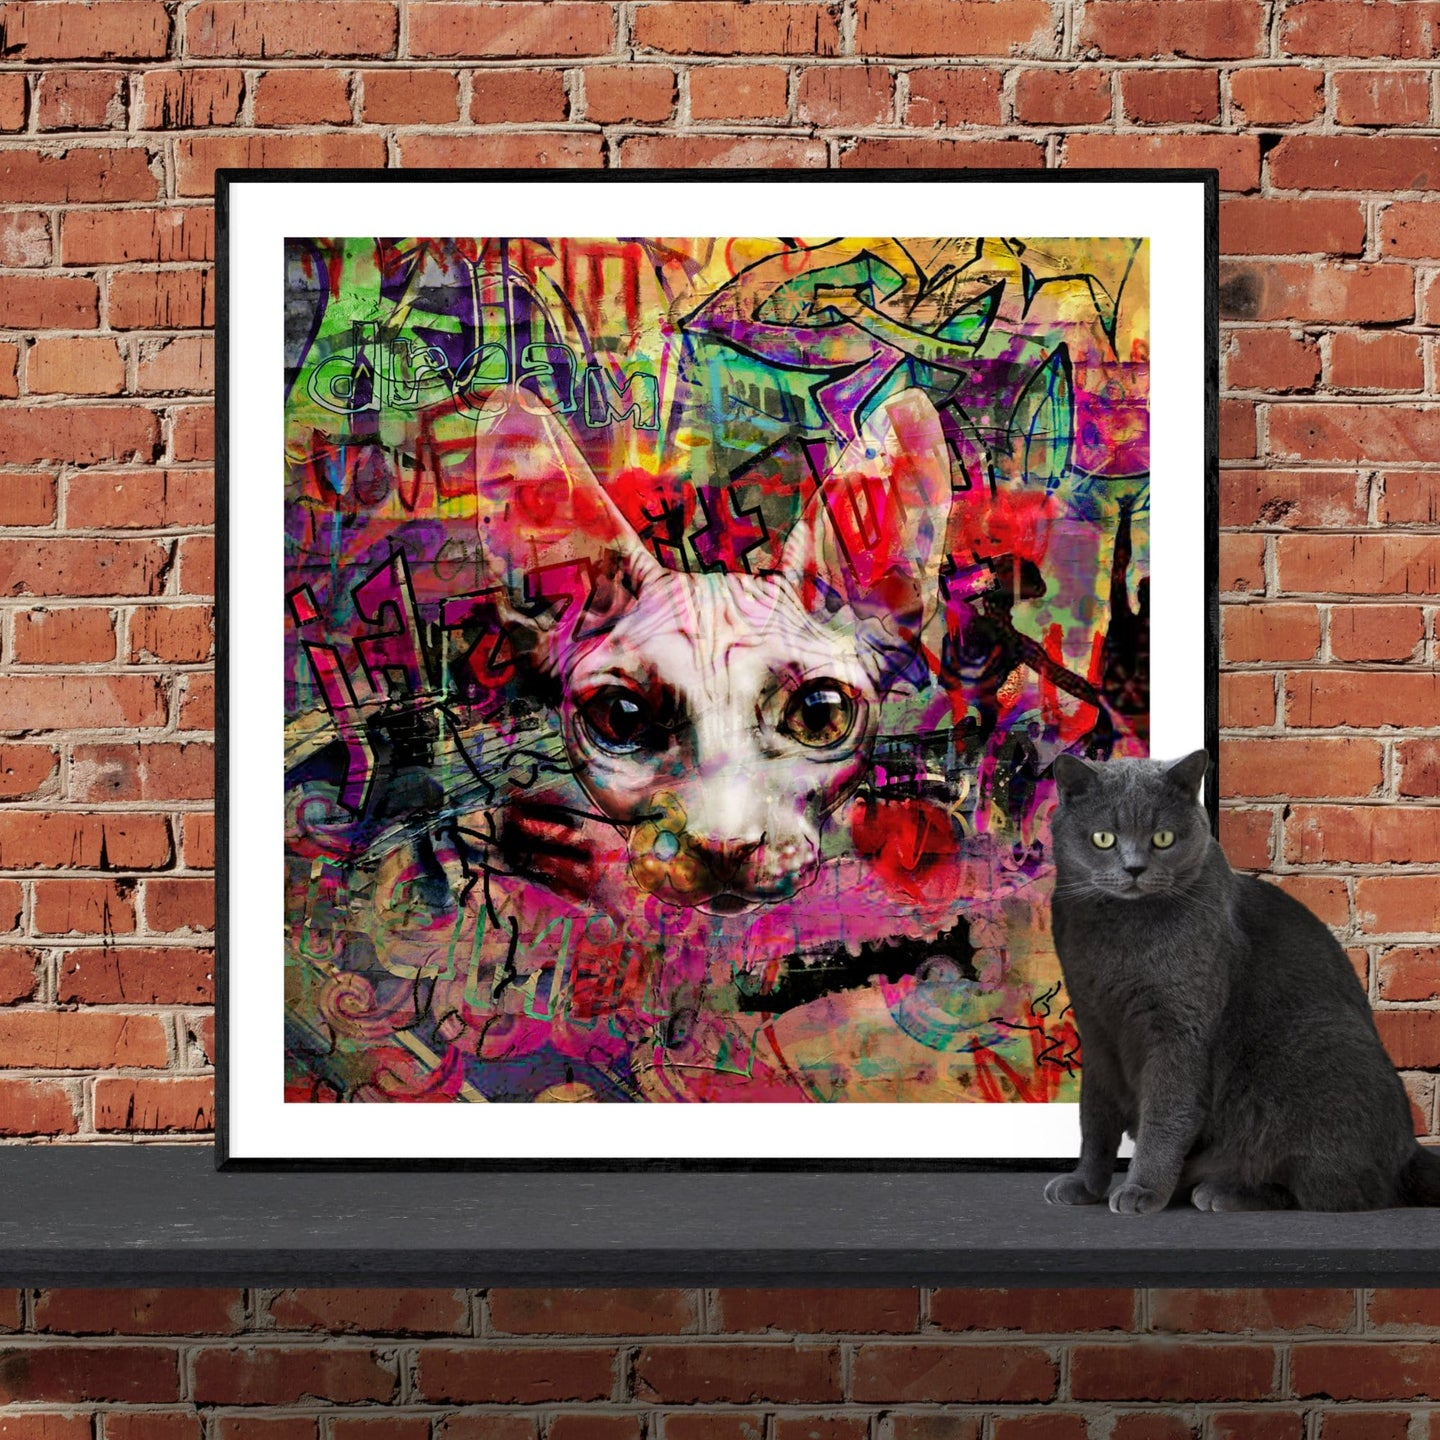 The Graffiti Cat - pop art kunst af Helt Sort